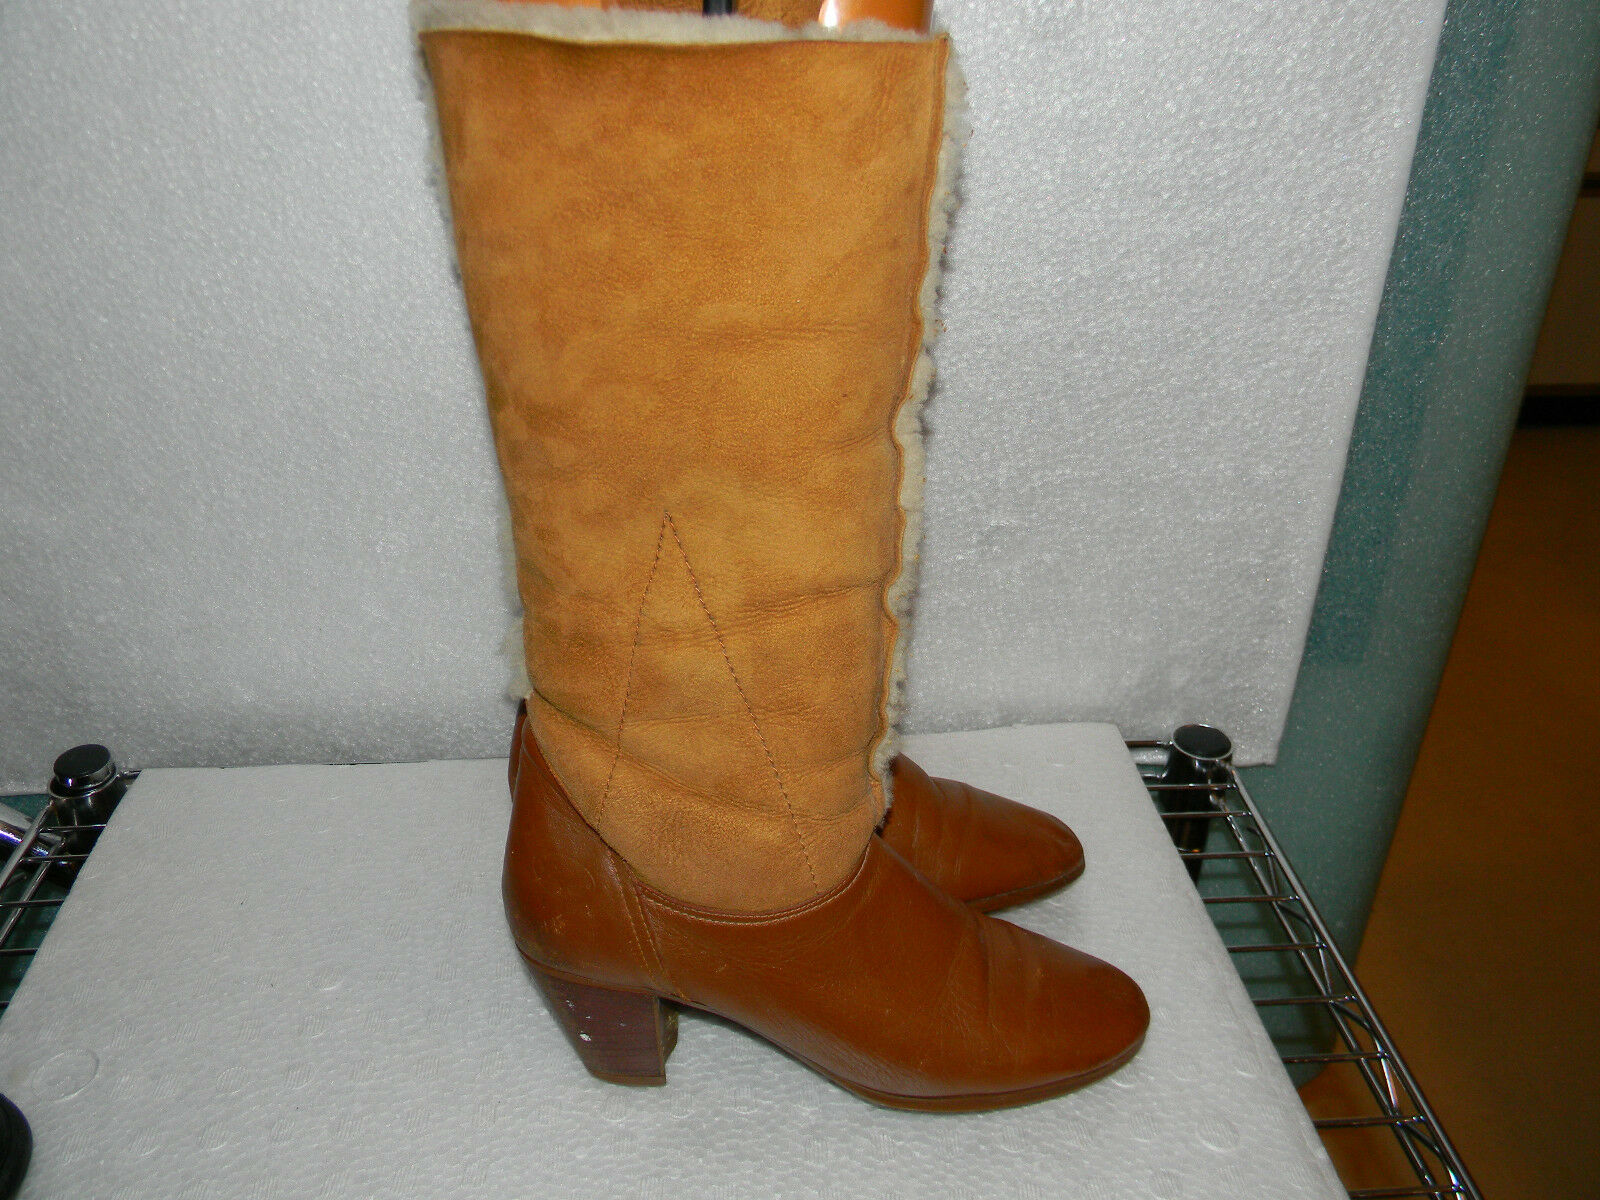 Bass botas 8.5 occidental de piel de oveja botas 8.5 Cowboy Shearling botas 8.5 Bass 8.5